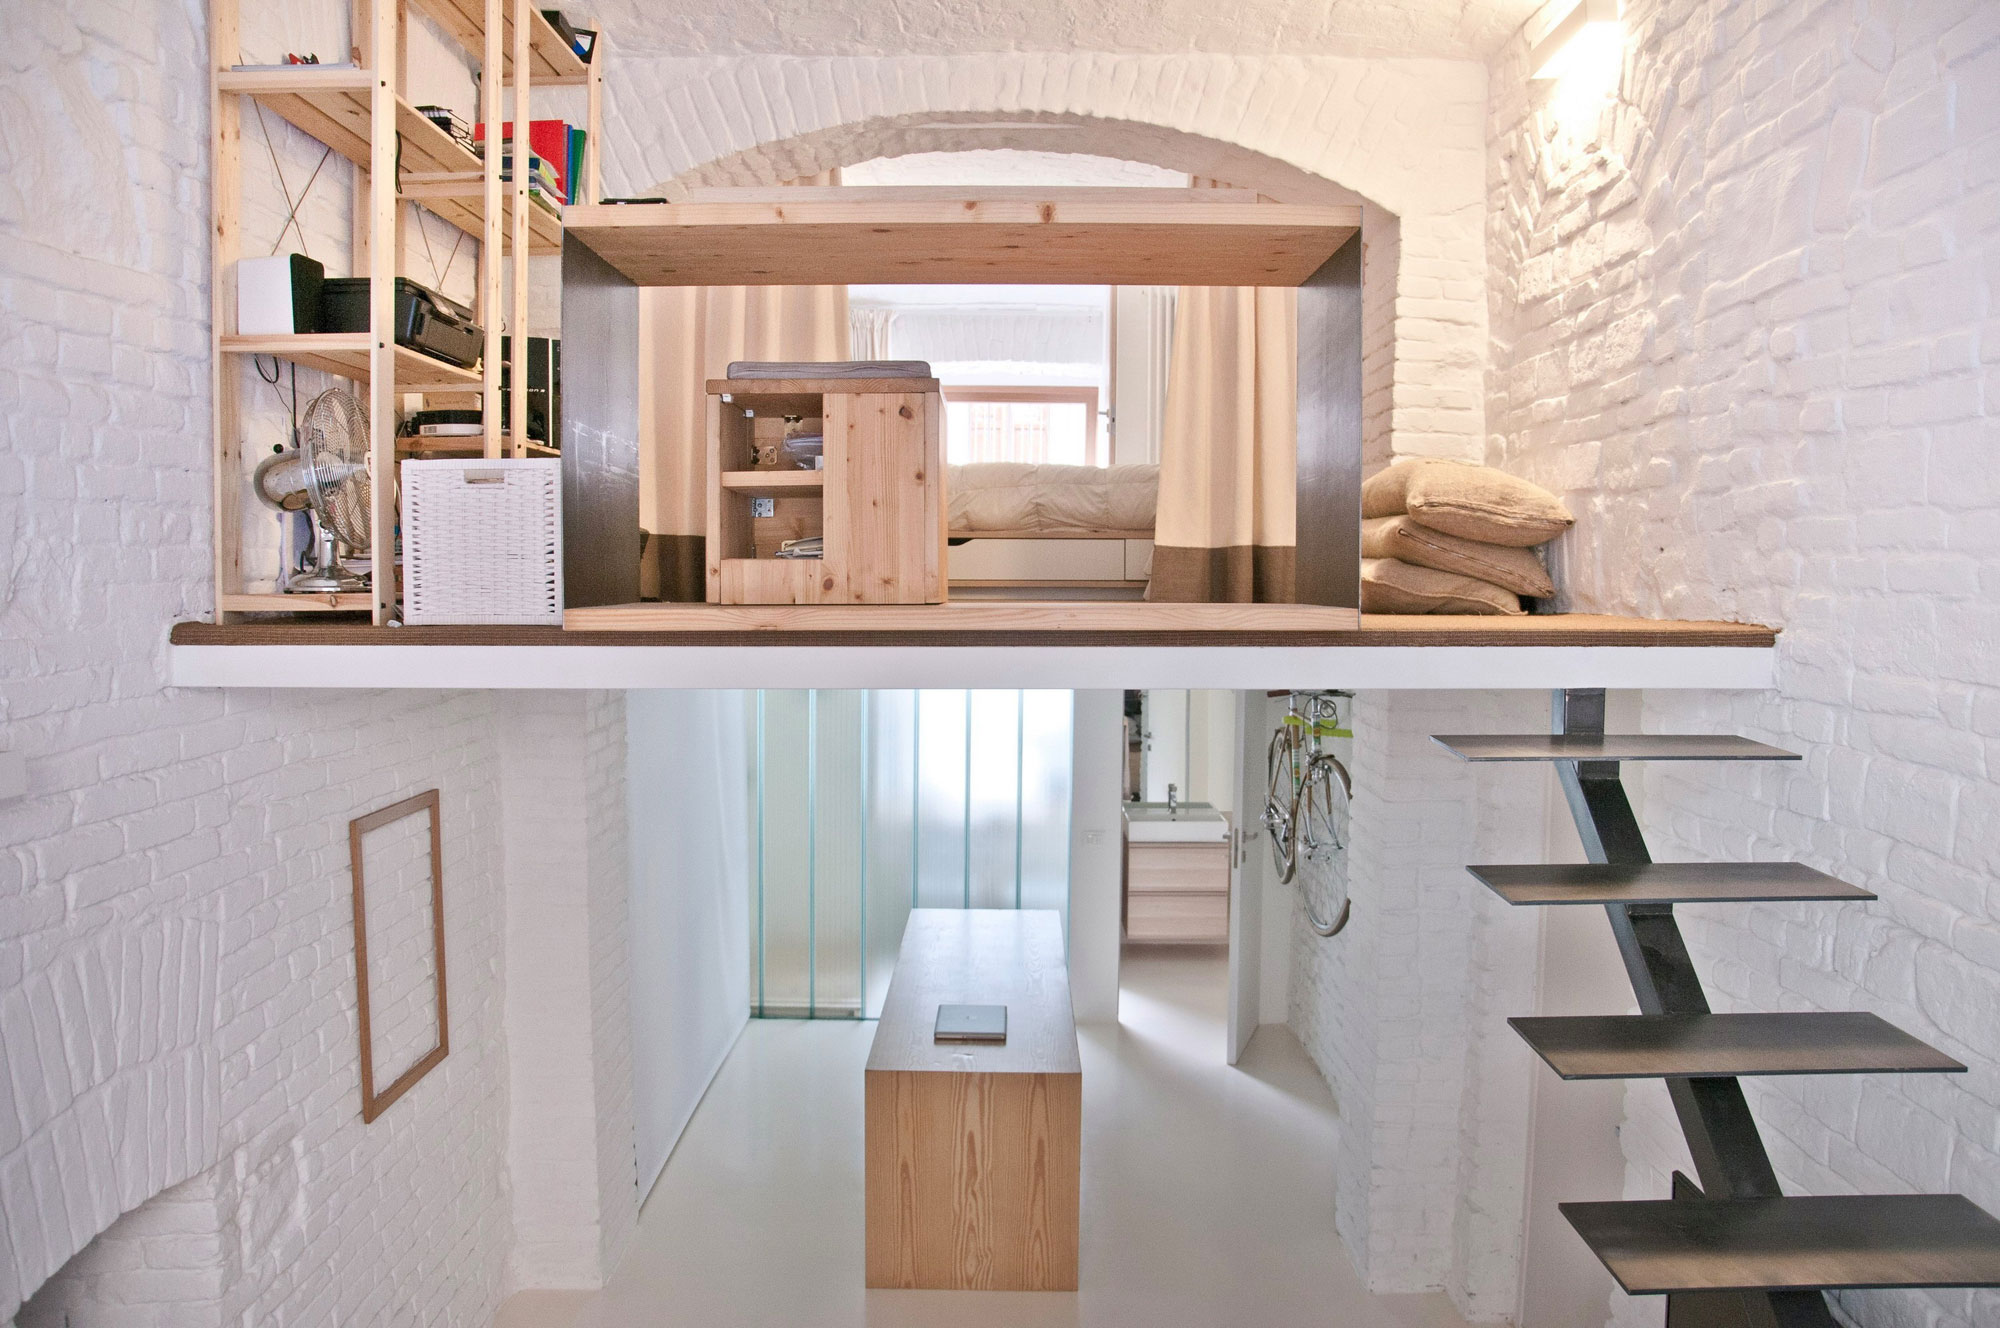 From Shop to Loft by R3architetti